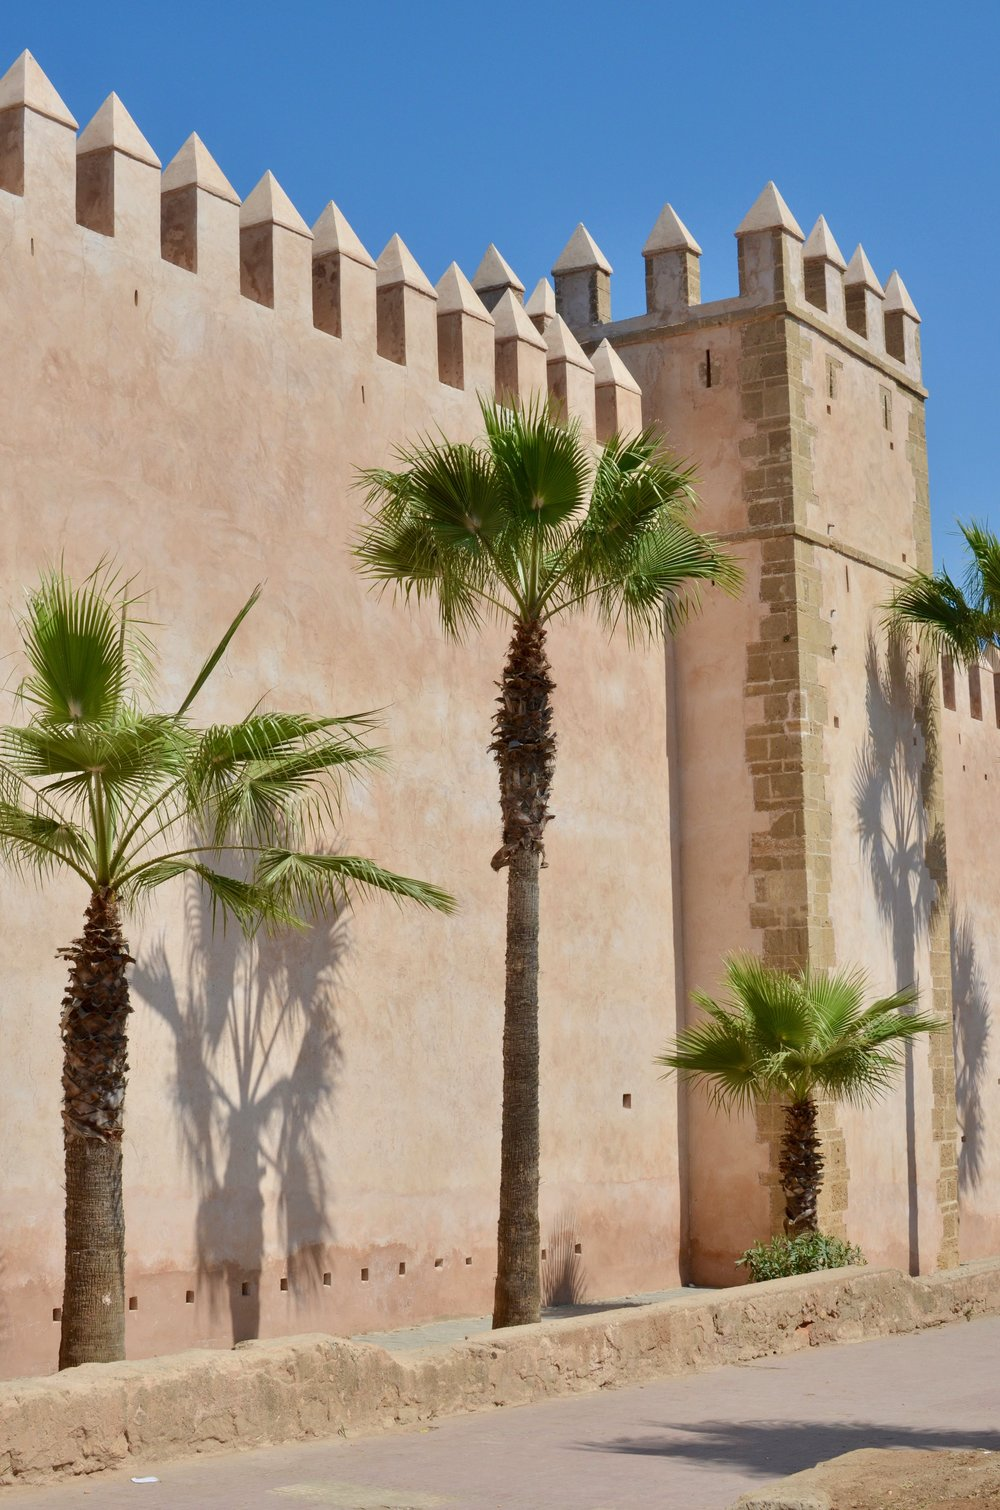 the Rabat Kasbah, basically a walled, historic part of the city